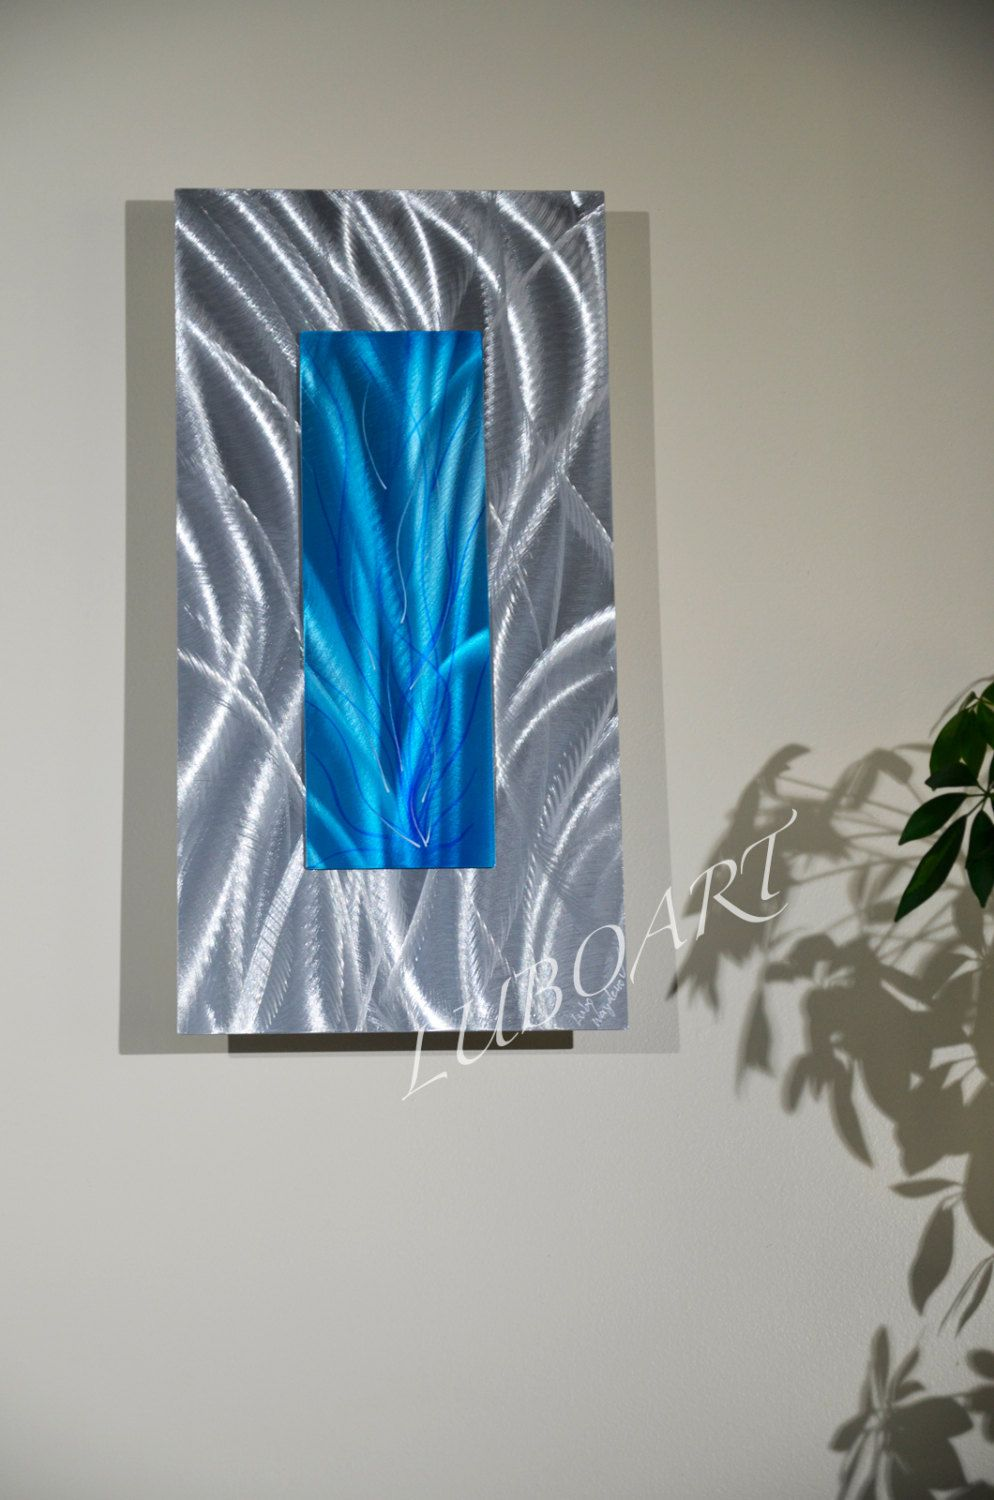 Metal art painting collage 3d modern office home contemporary silver blue wall decor unique hand made sculpture by lubo naydenov by luboart on etsy